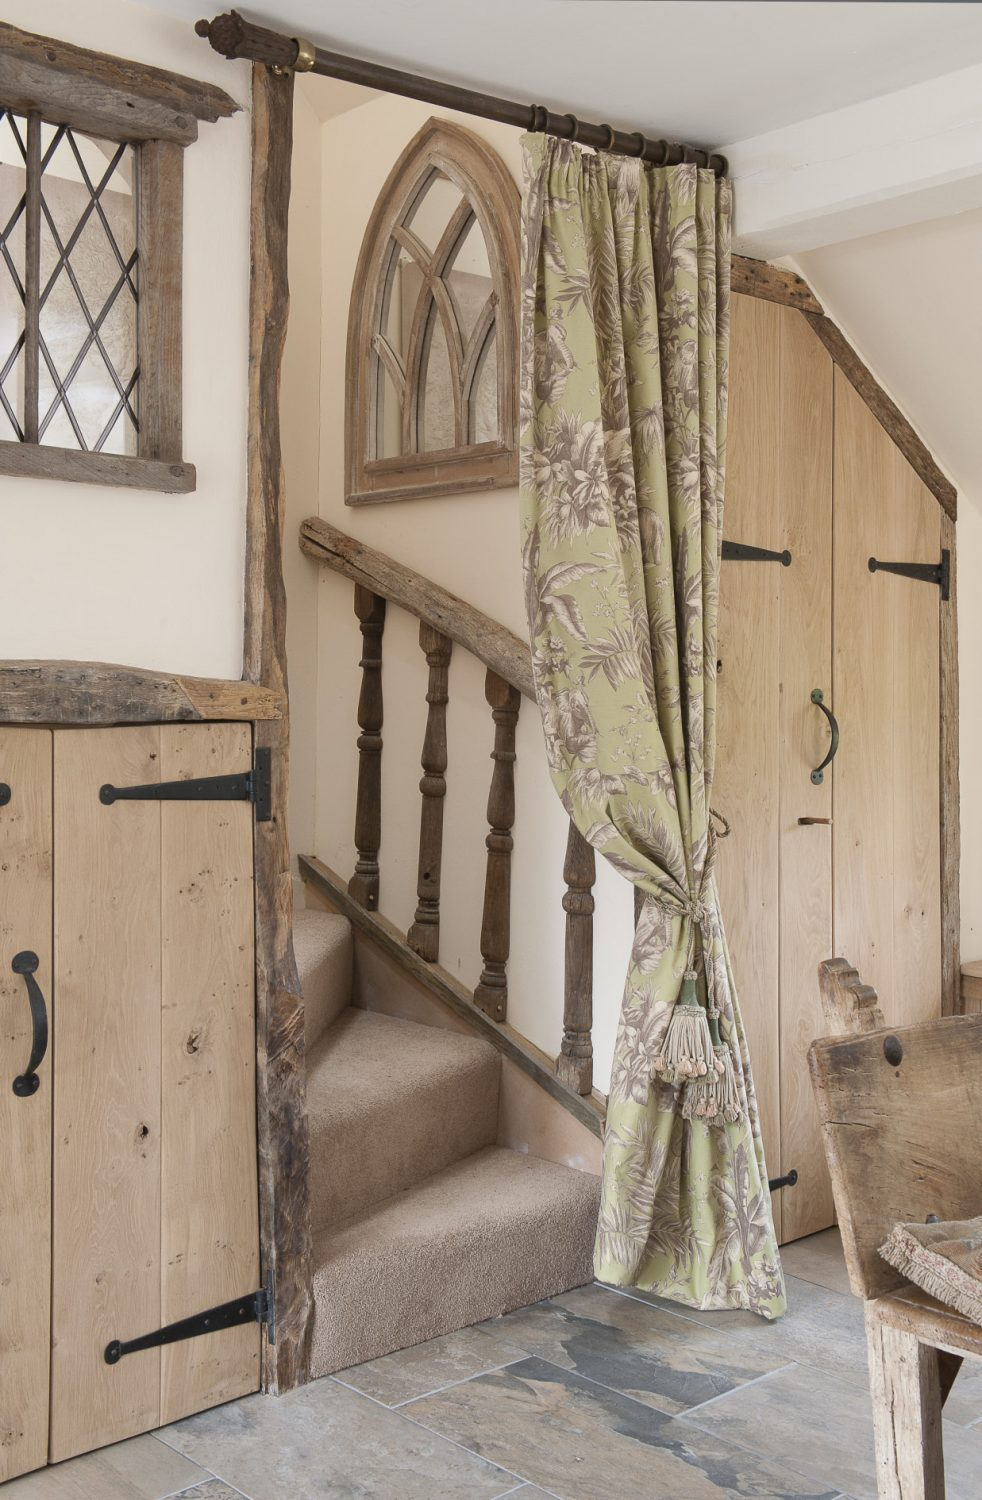 The stairway is also framed in ancient oak and climbing up the first few steps are oak spindles left over from the grand reclaimed staircase that now graces her own barn home. Above the spindles is a gothic window mirror